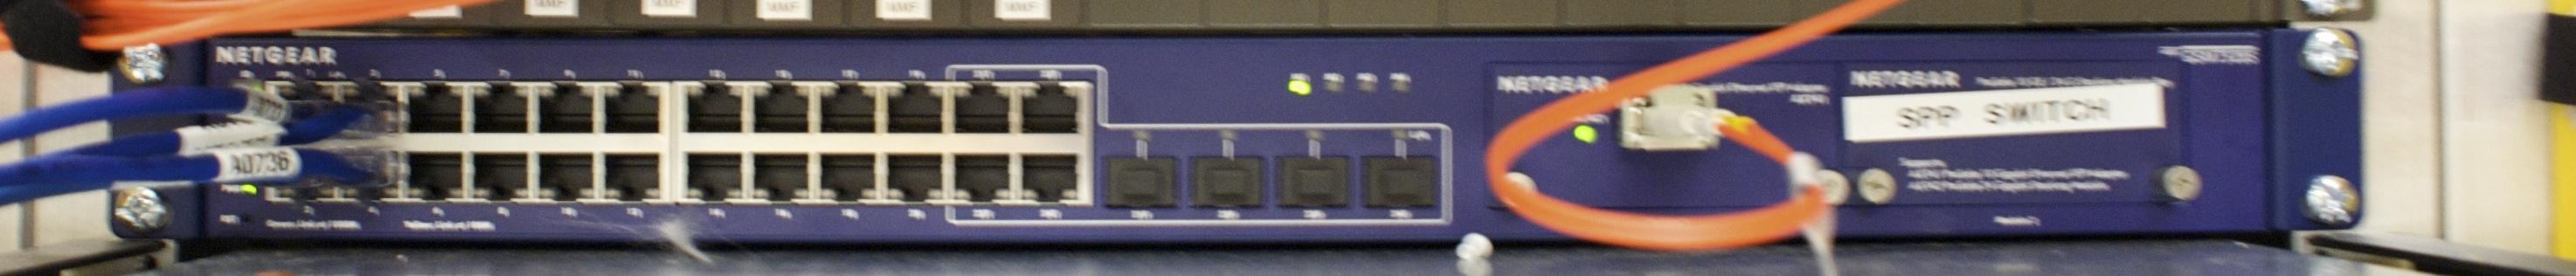 SPP Netgear switch (thanks to Chris Tracy)